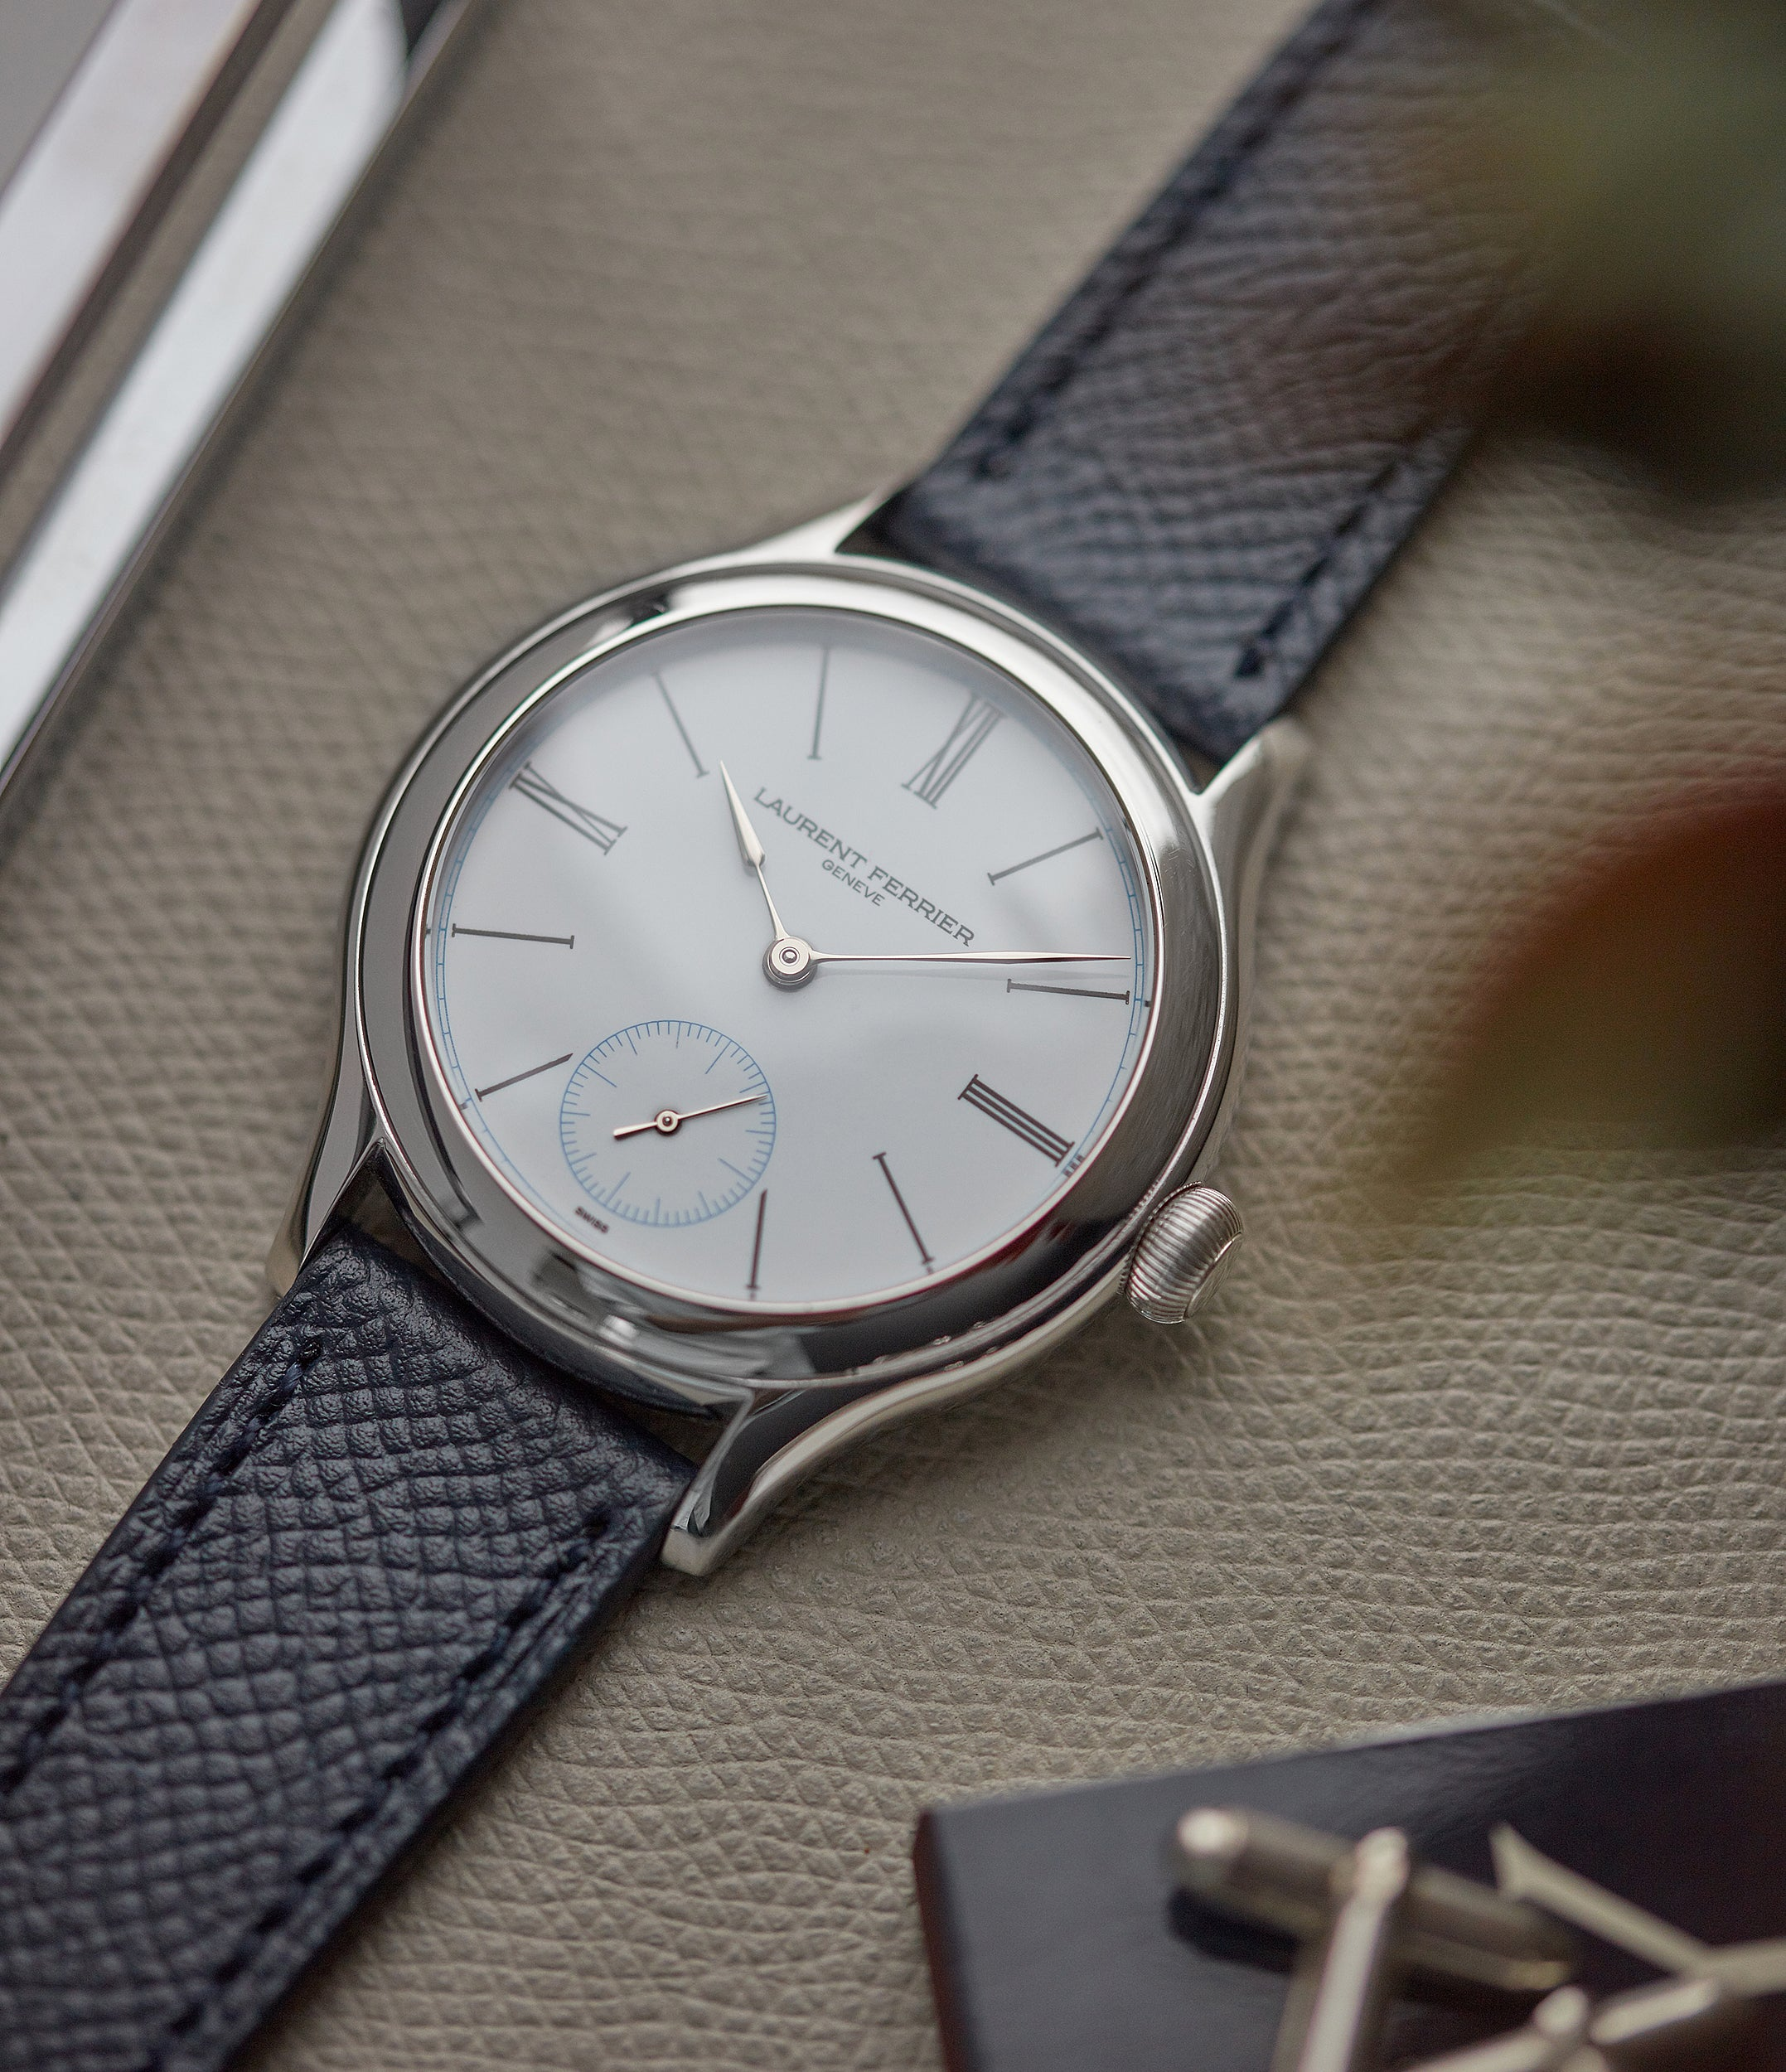 pre-owned Laurent Ferrier Galet Micro-rotor platinum white enamel dial limited edition dress watch sale A Collected Man London UK specialist of independent watchmakers